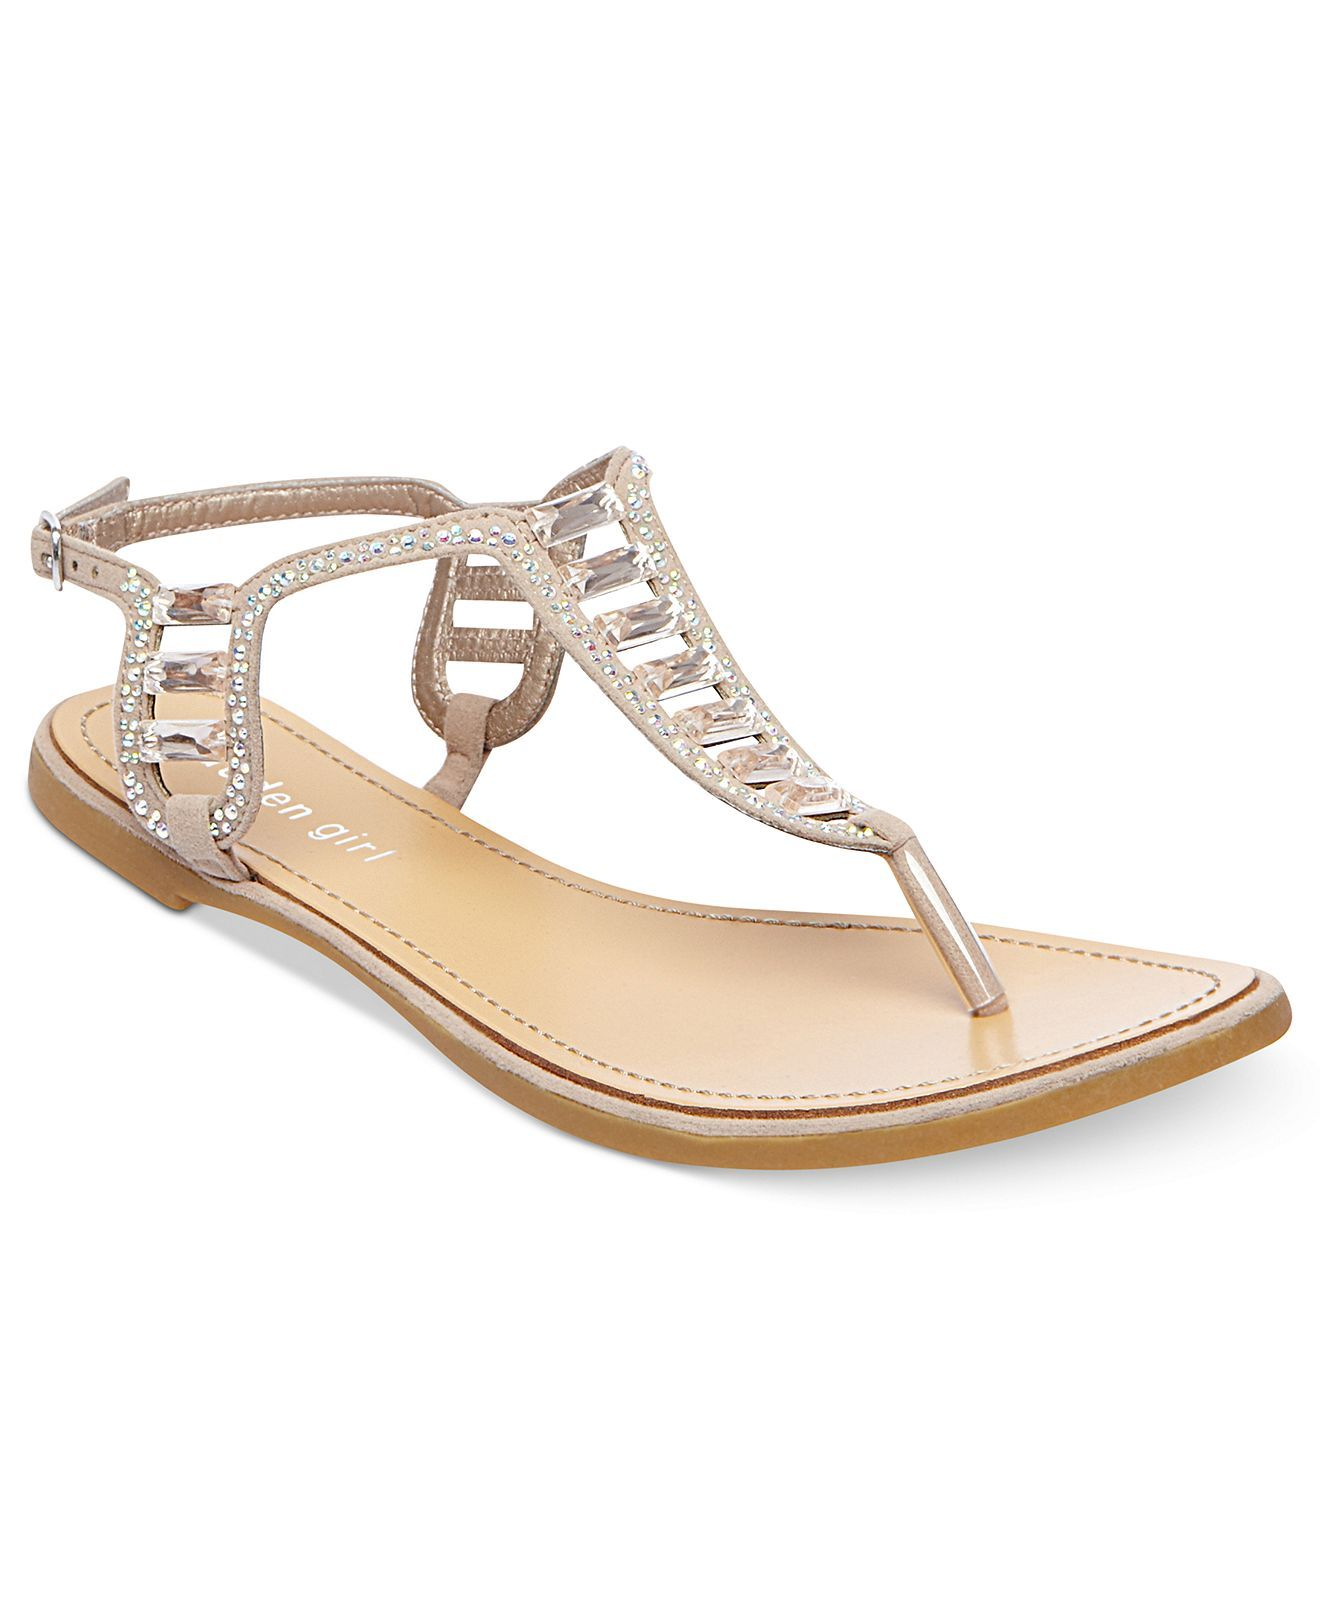 469ccf053 Pin by Melissa Bornstein on Shoes